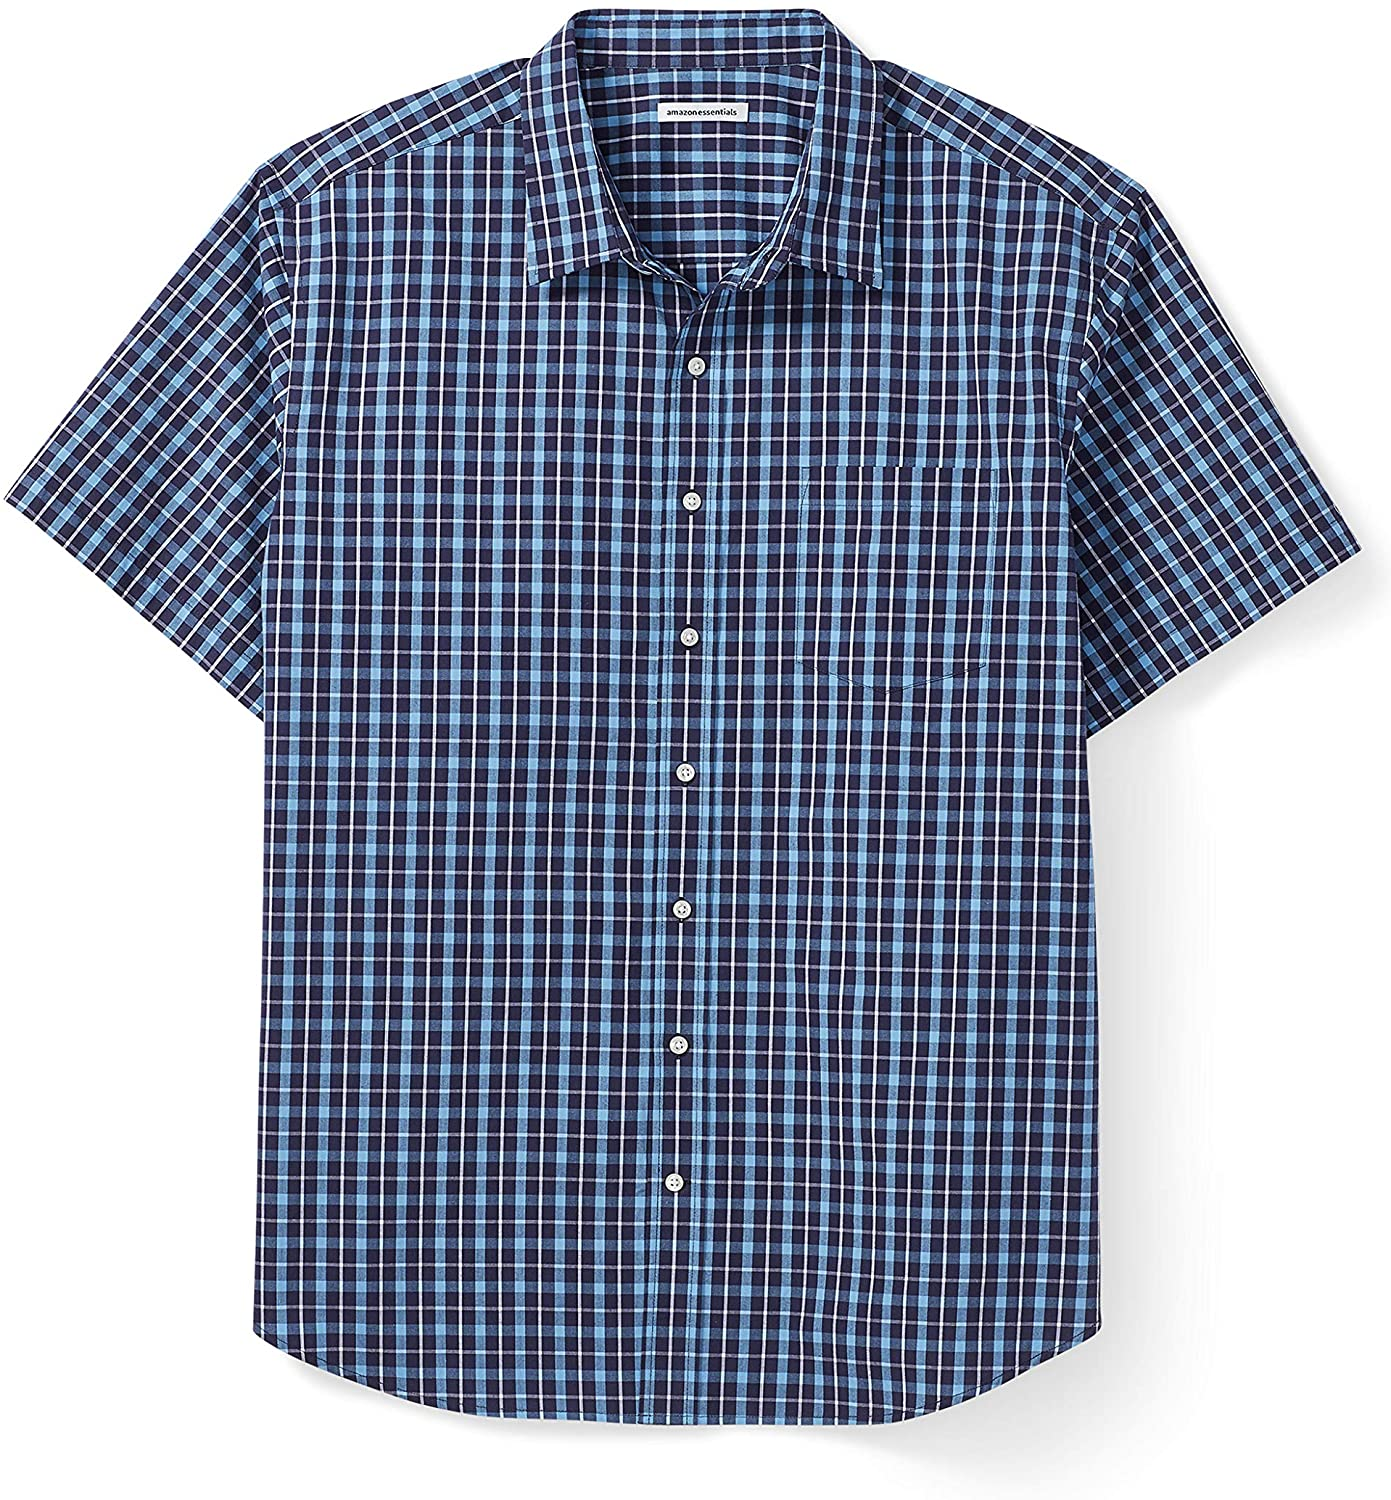 DHgate Essentials Men's Big & Tall Short-Sleeve Plaid Casual Poplin Shirt Fit by DXL